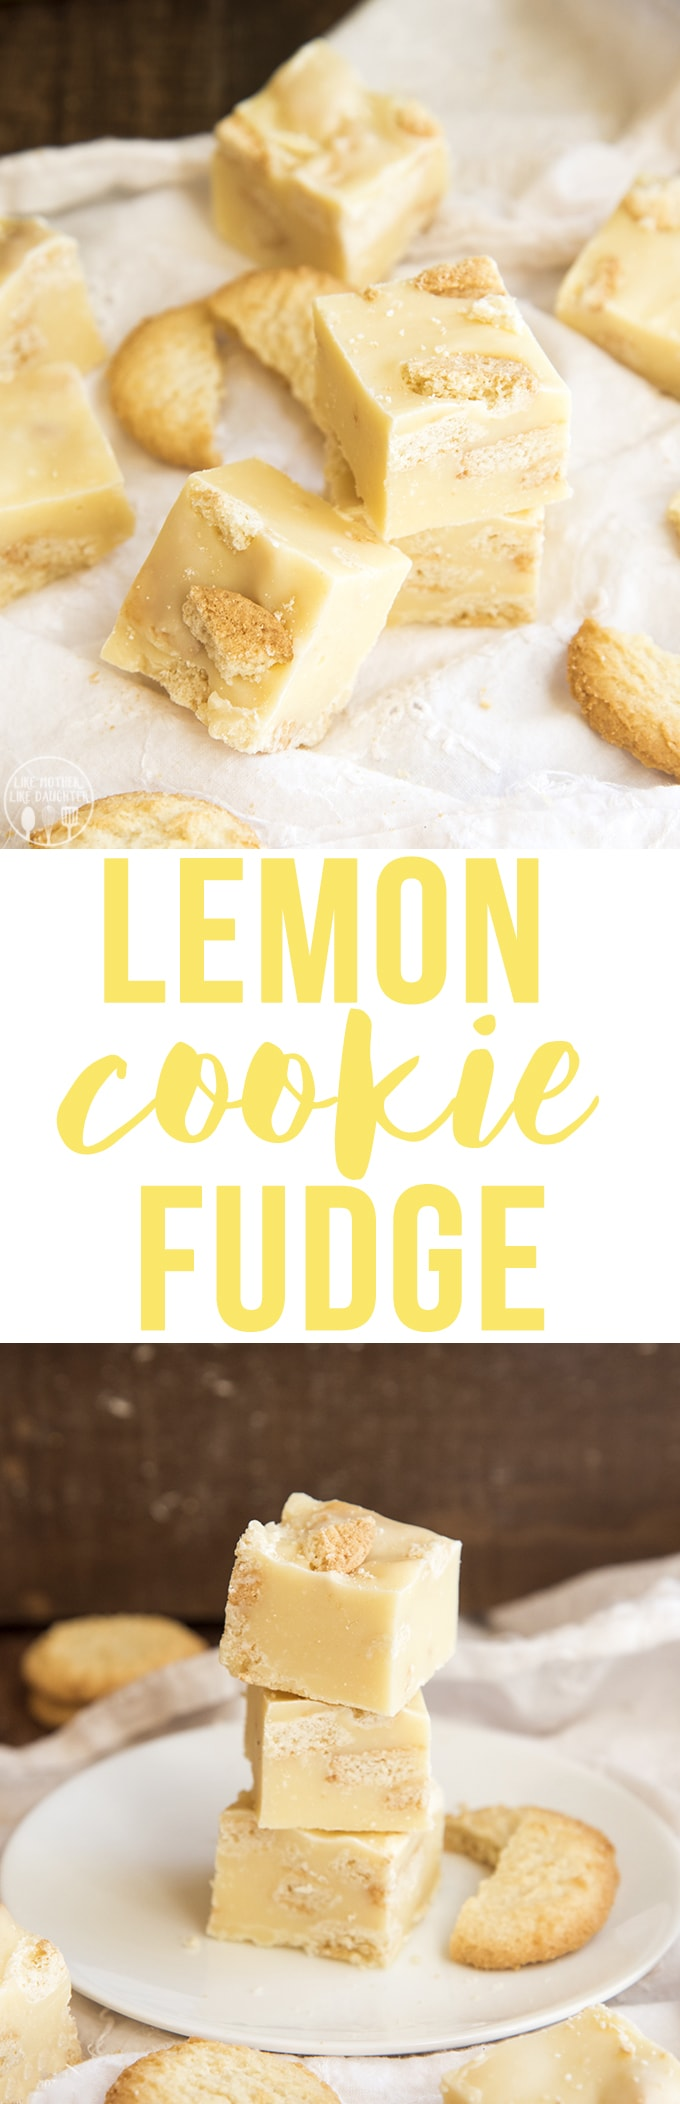 Lemon Cookie Fudge is a tangy microwavable lemon fudge, stuffed full of lemon cookies for a taste of sunshine all year long.